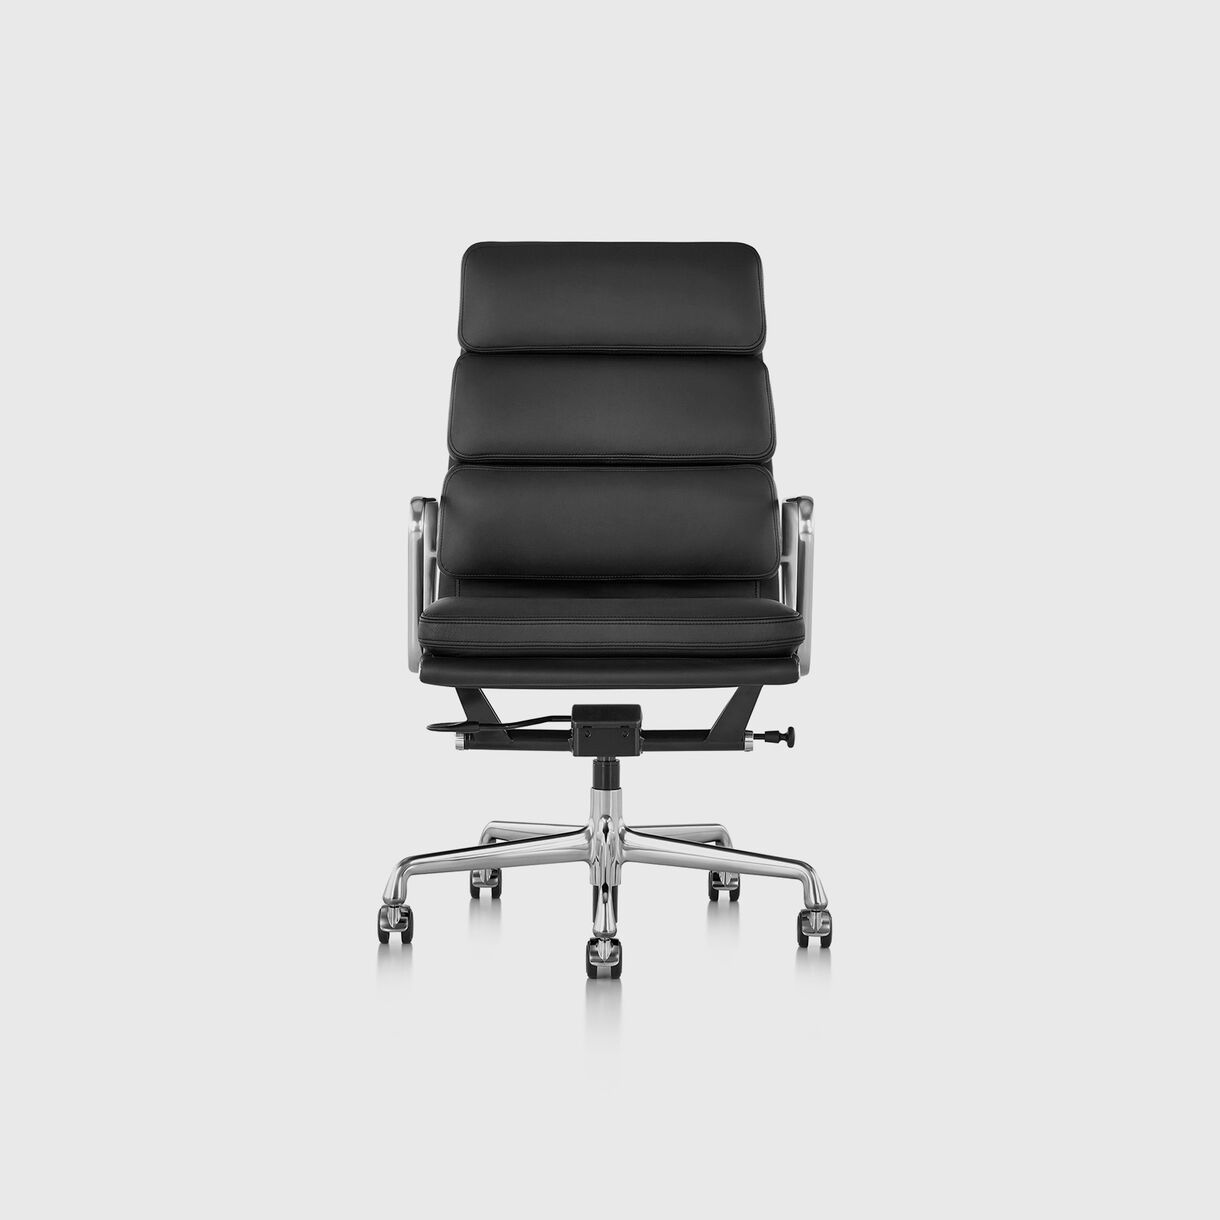 Eames Soft Pad Group Executive Chair, Black Leather & Polished Aluminium